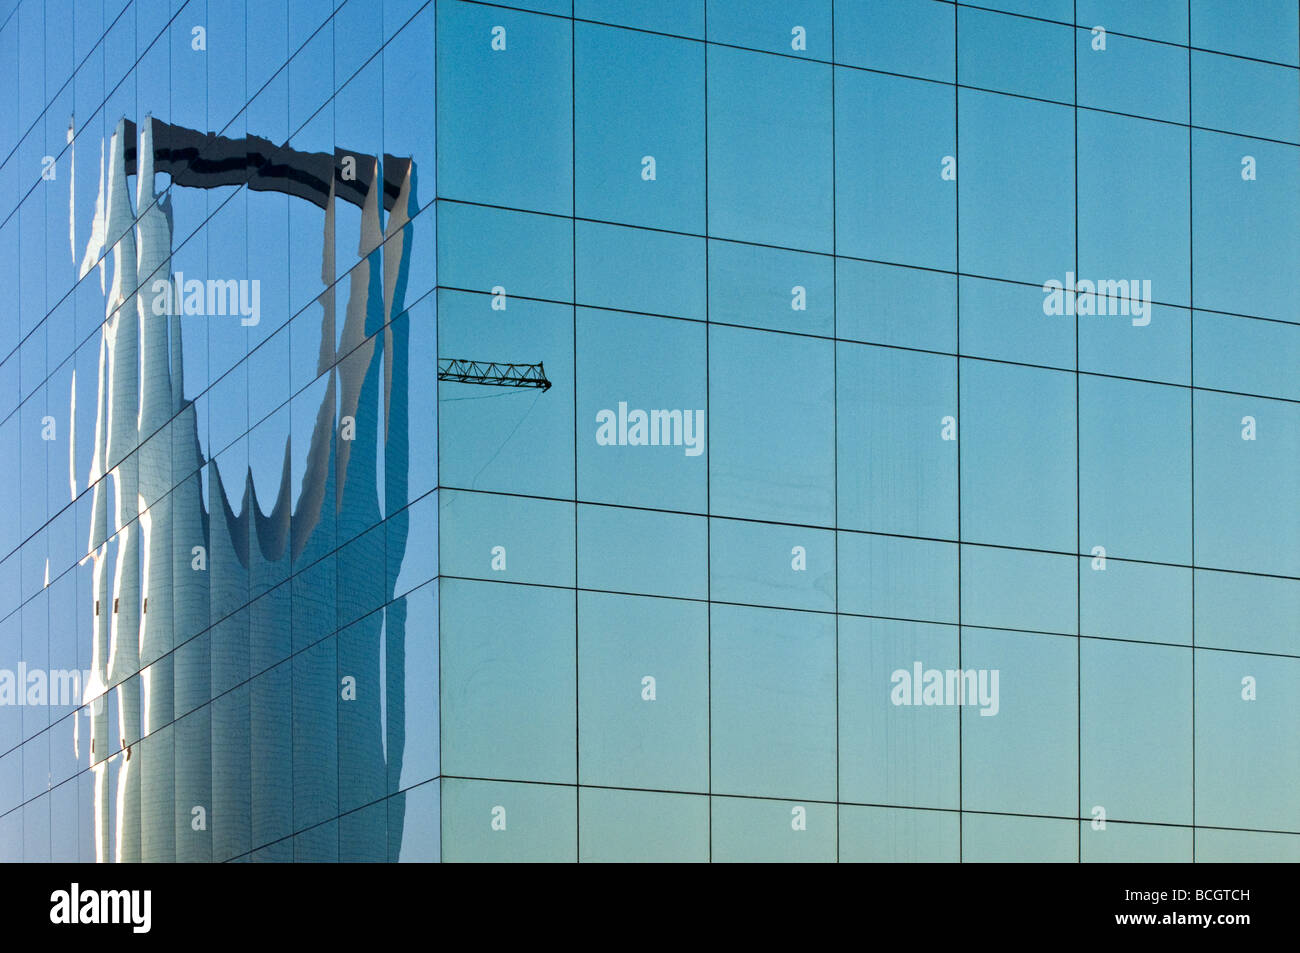 Rijadh the Kingdom Tower reflected on a modern building - Stock Image